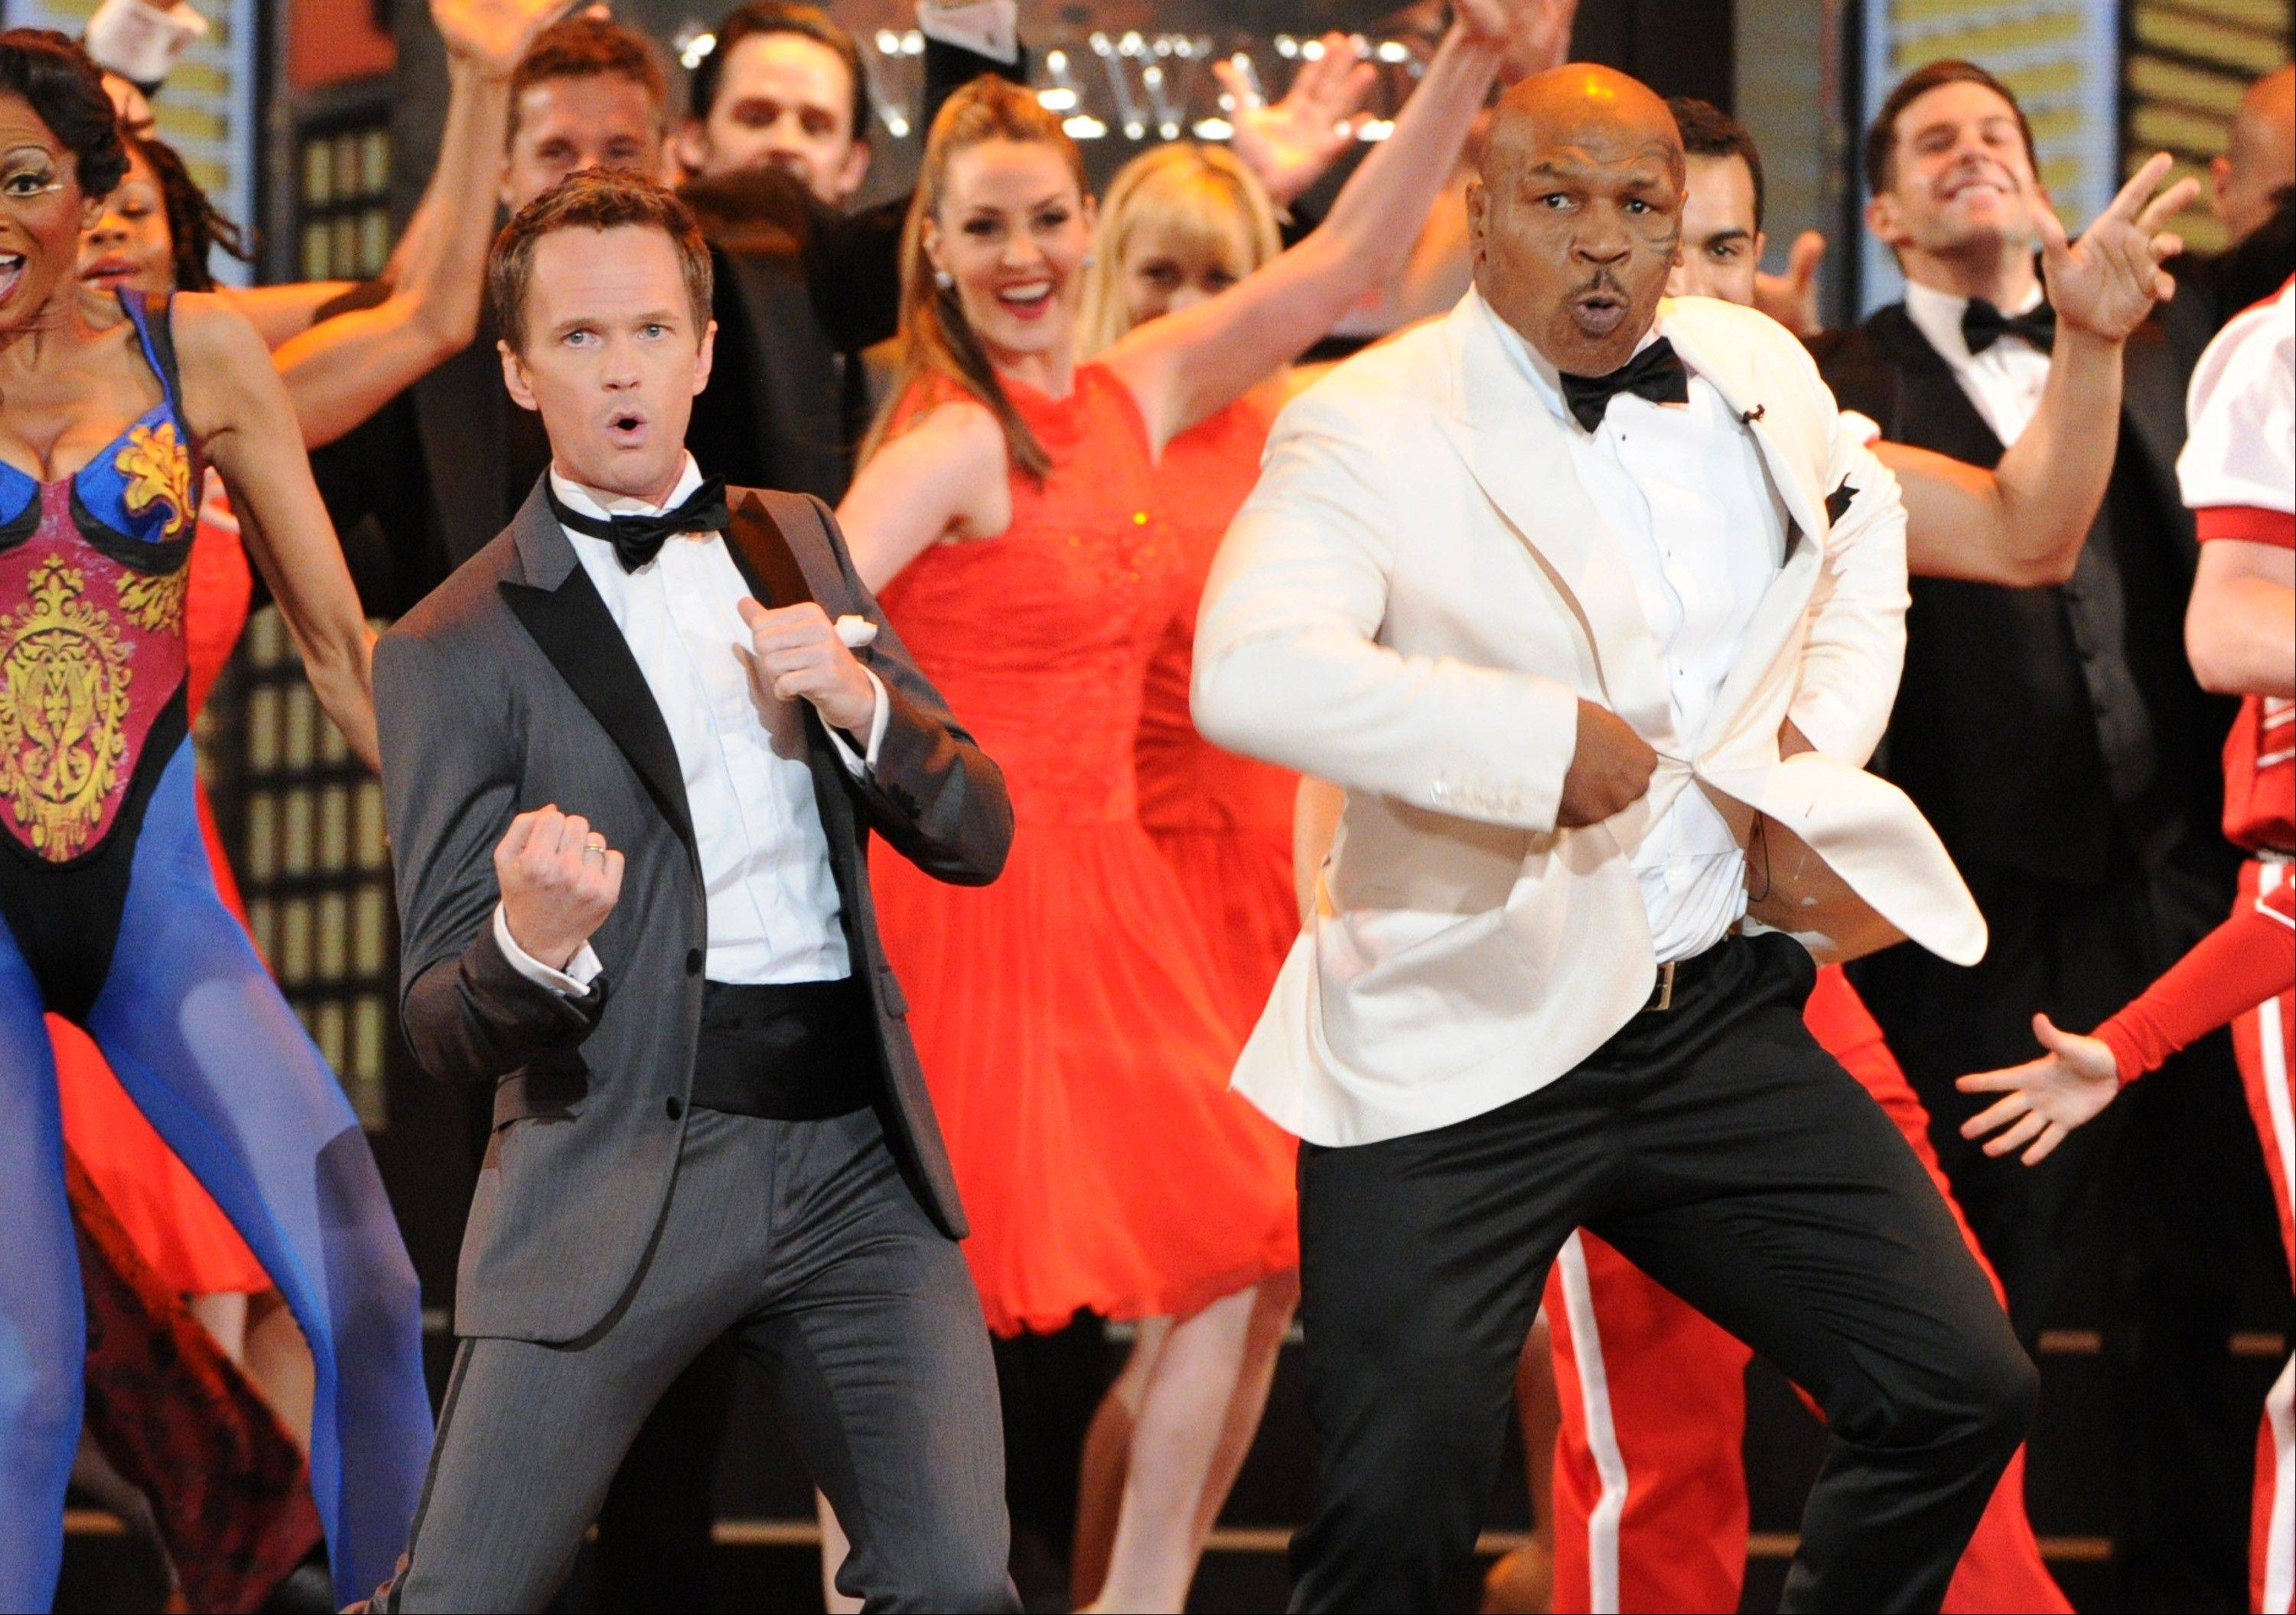 Actor Neil Patrick Harris, left, and Mike Tyson perform during the opening number Sunday at the 67th Annual Tony Awards in New York.